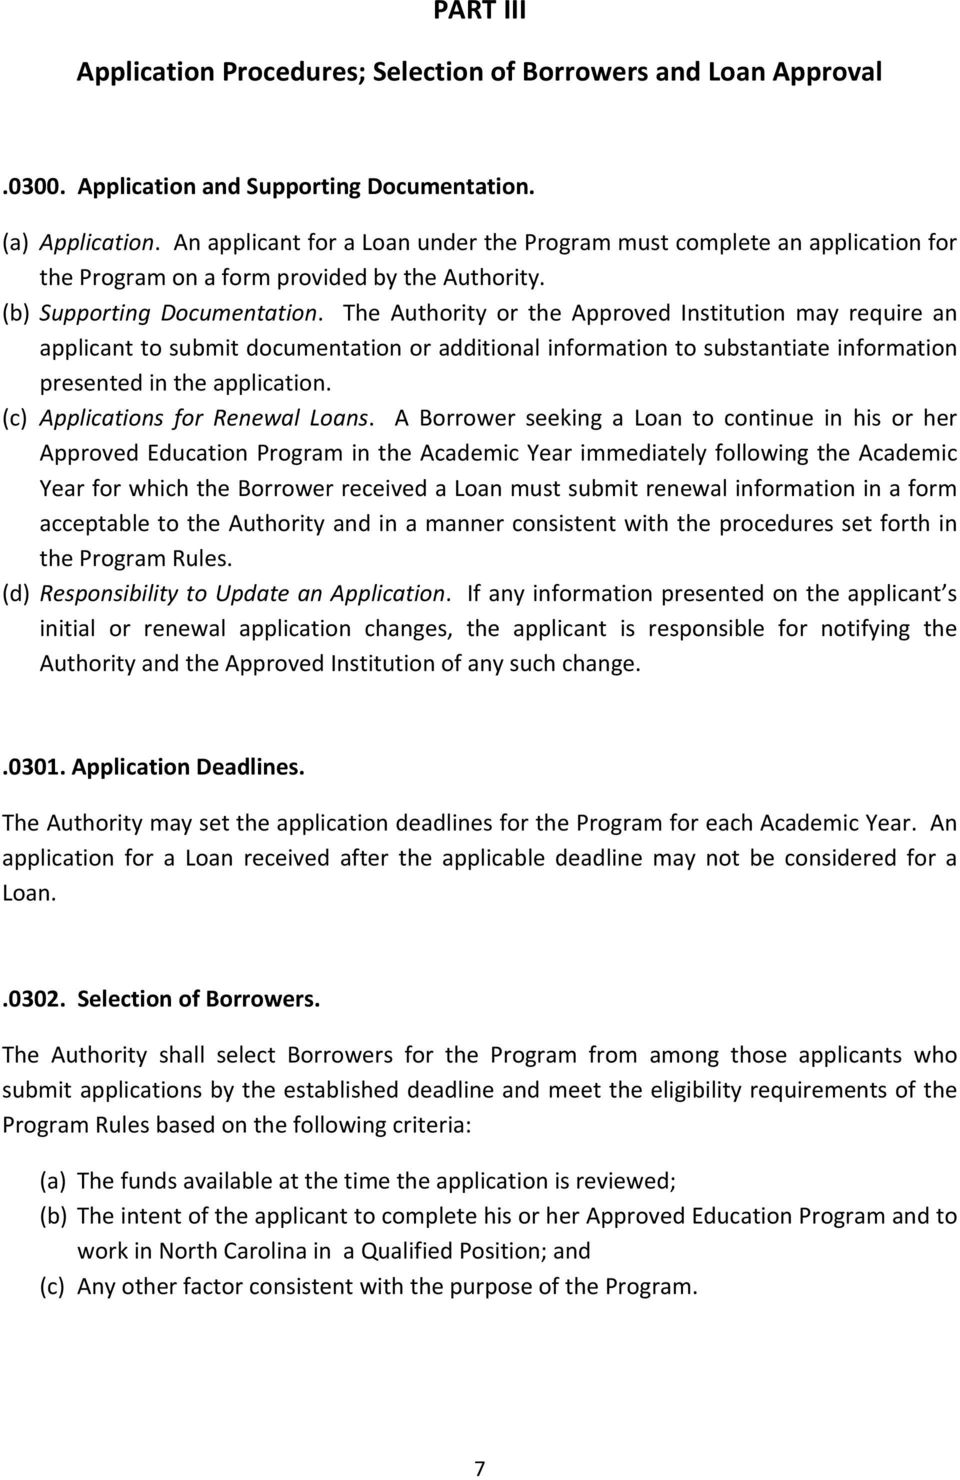 The Authority or the Approved Institution may require an applicant to submit documentation or additional information to substantiate information presented in the application.